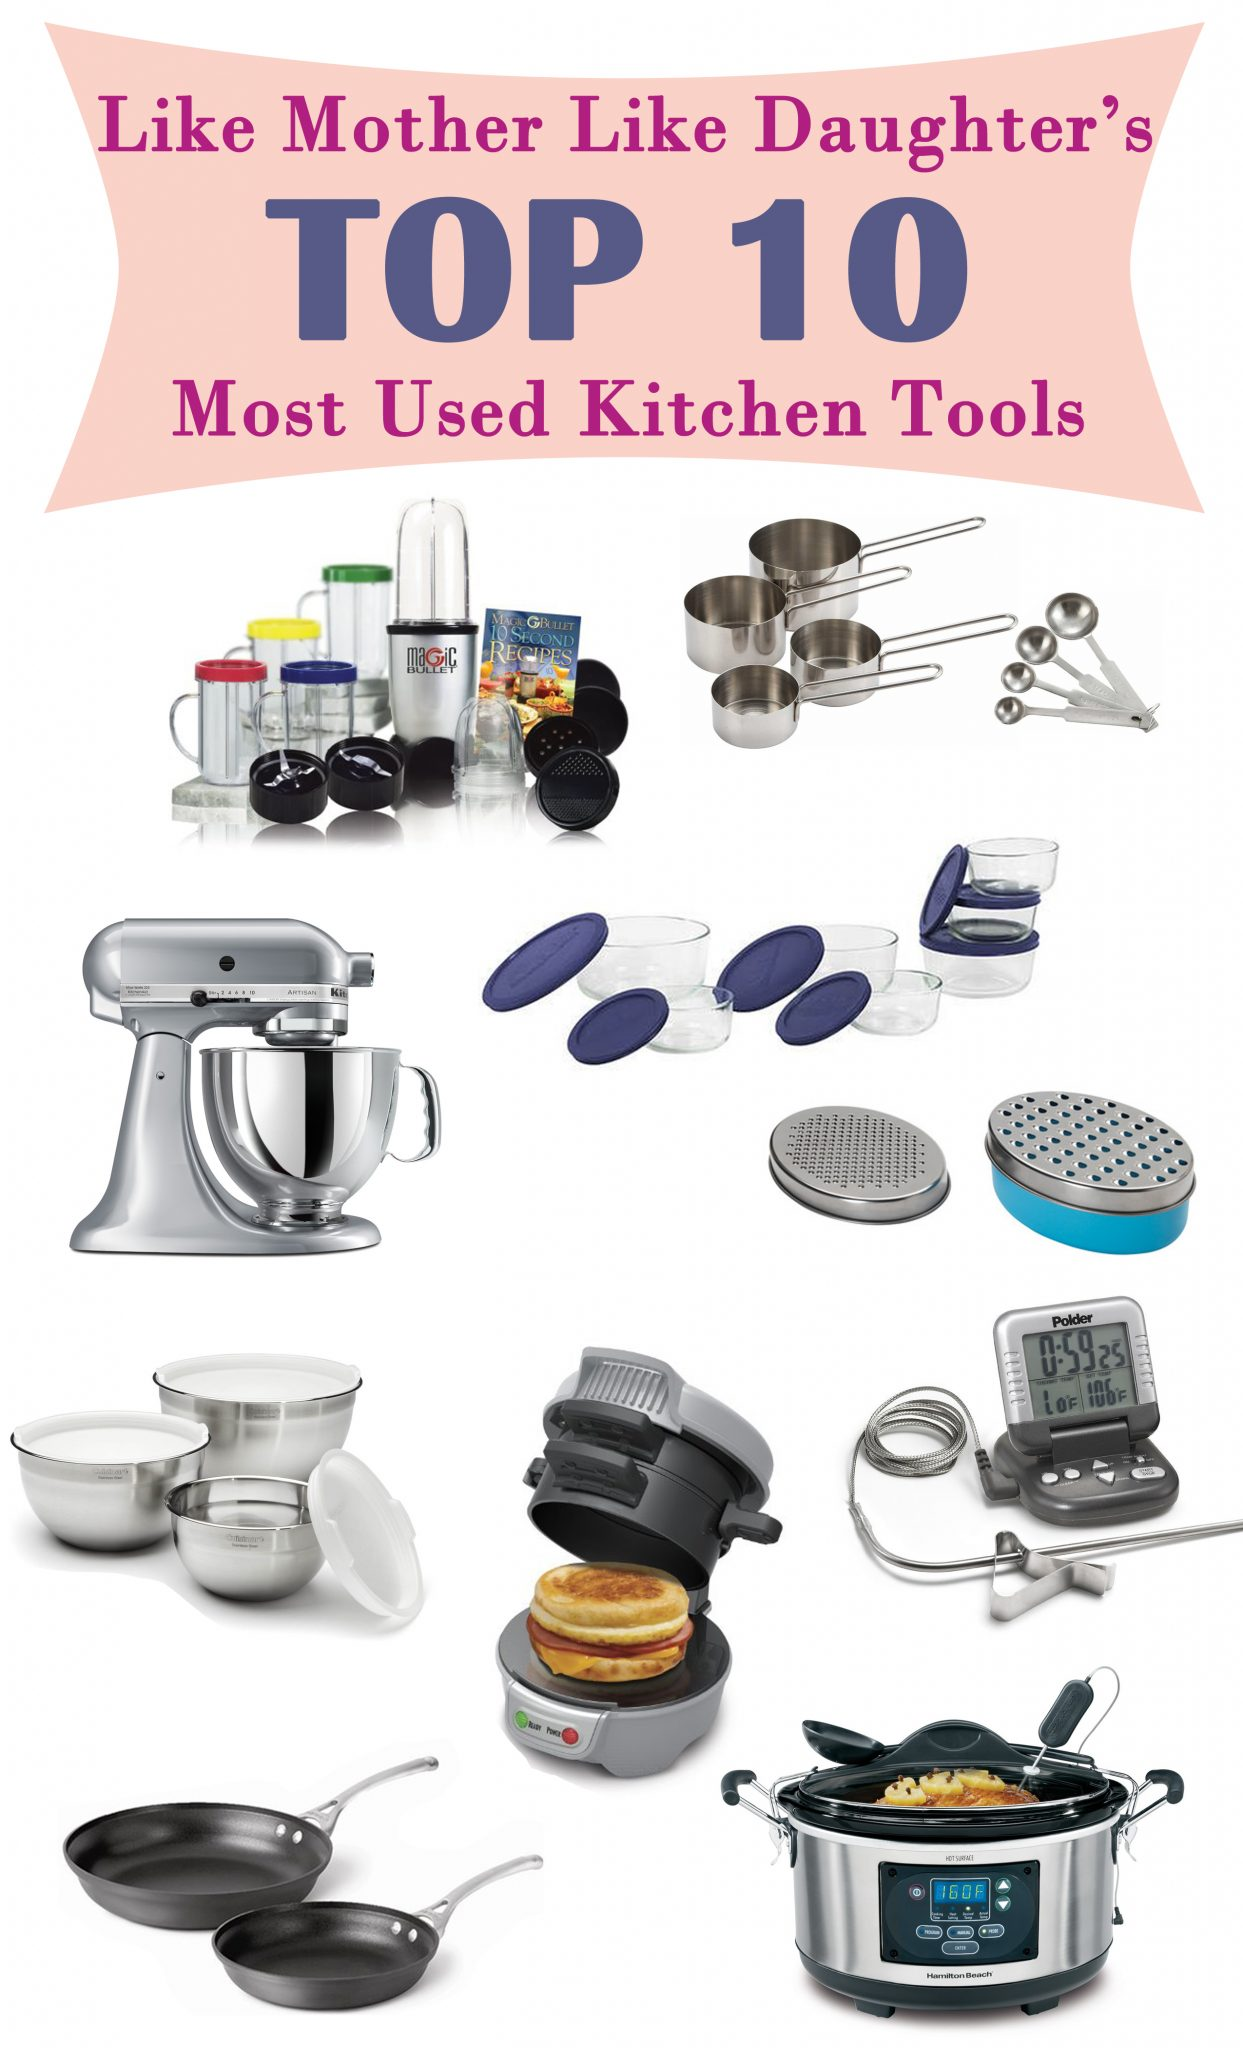 Uncategorized Top 10 Kitchen Appliances top 10 kitchen tools used in lmld kitchens like mother what is your most tool